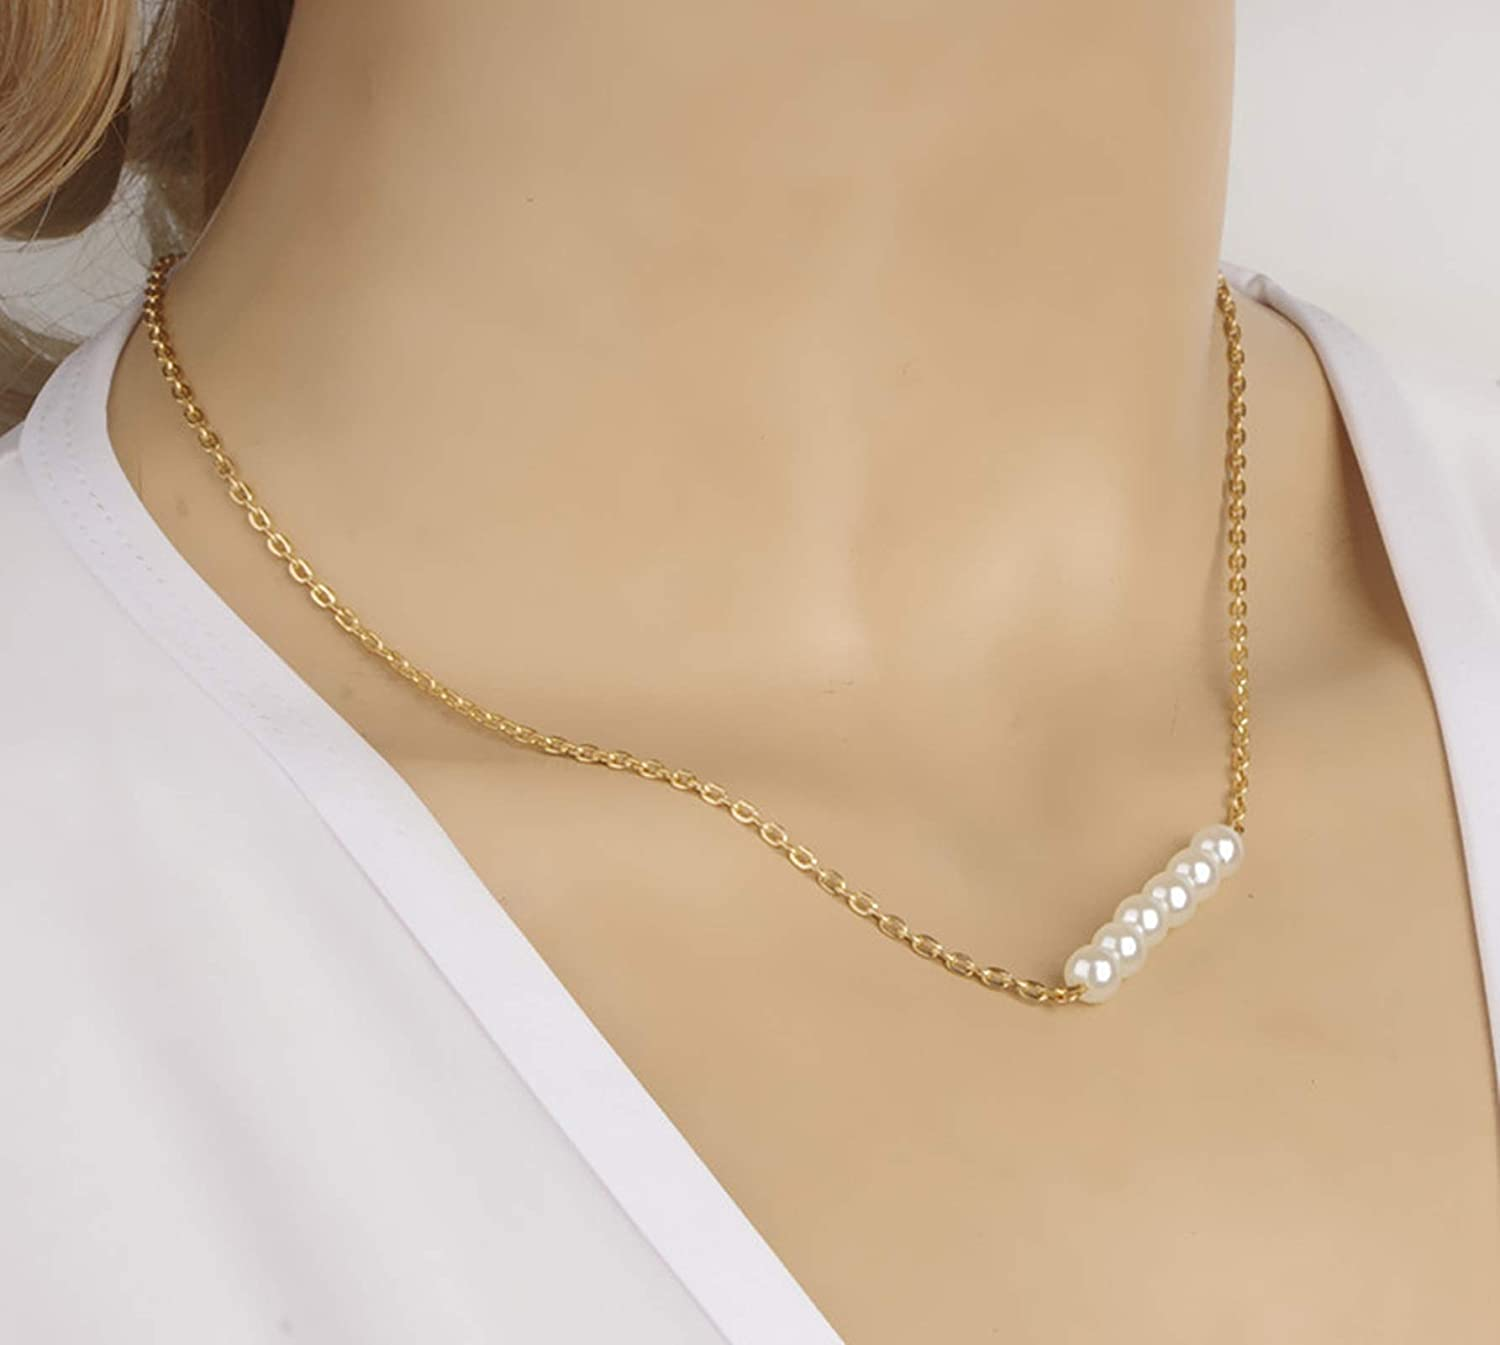 Epinki Gold Plated Bohemia Necklace Gold Pearl Chain Clavicle Necklace for Women and Girls